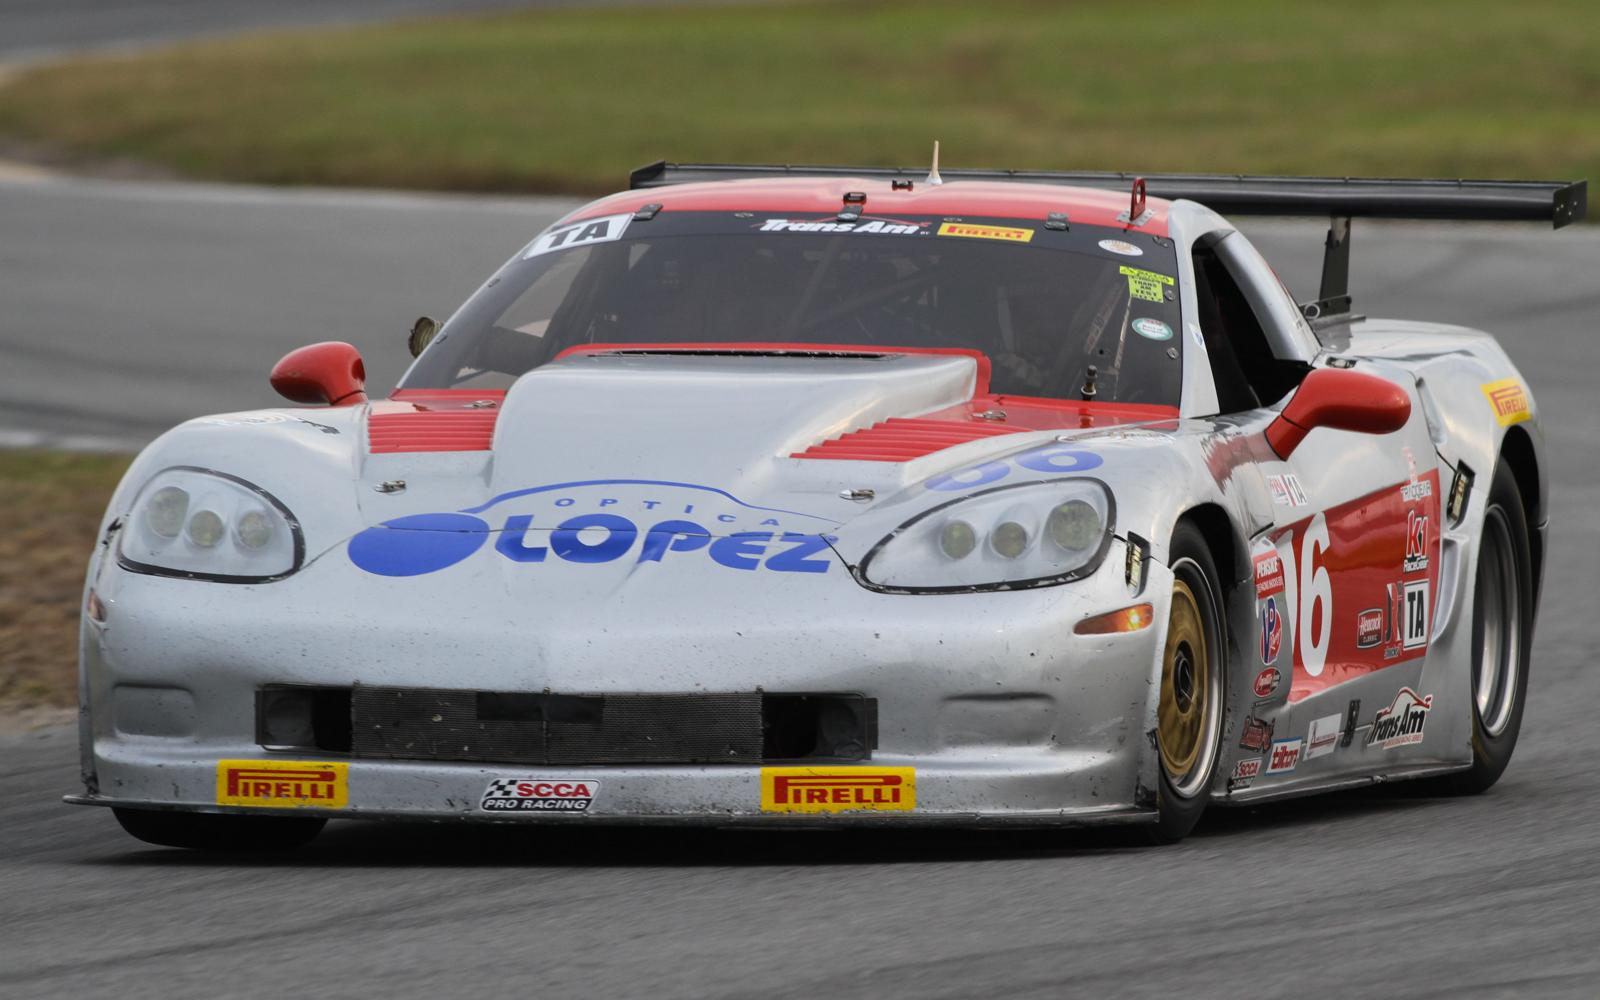 RJ Lopez leads Trans Am Practice 2 at Daytona